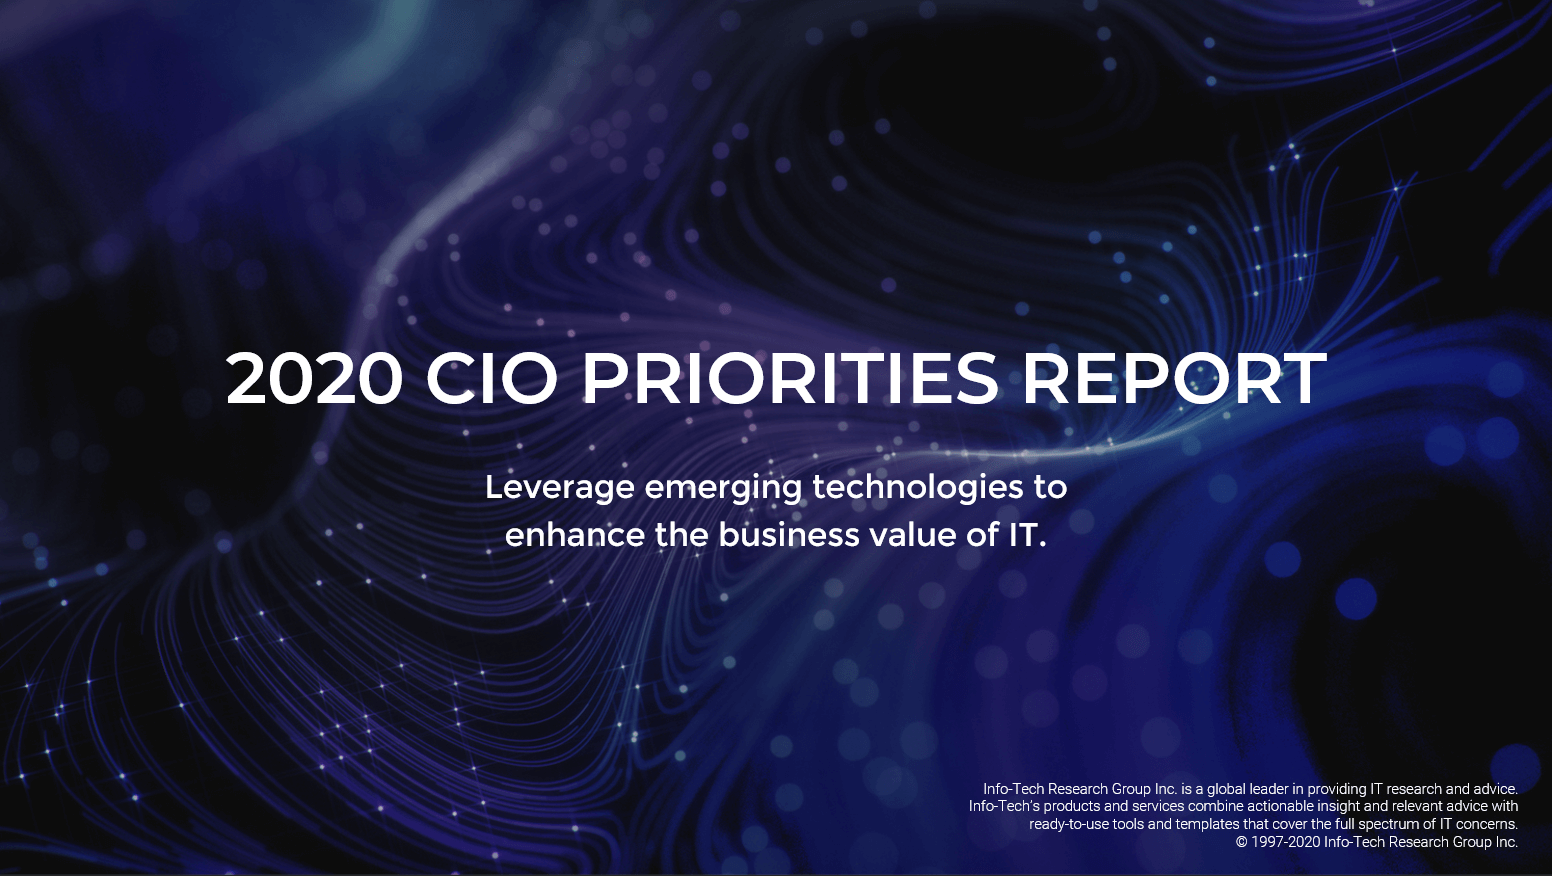 2020 CIO Priorities